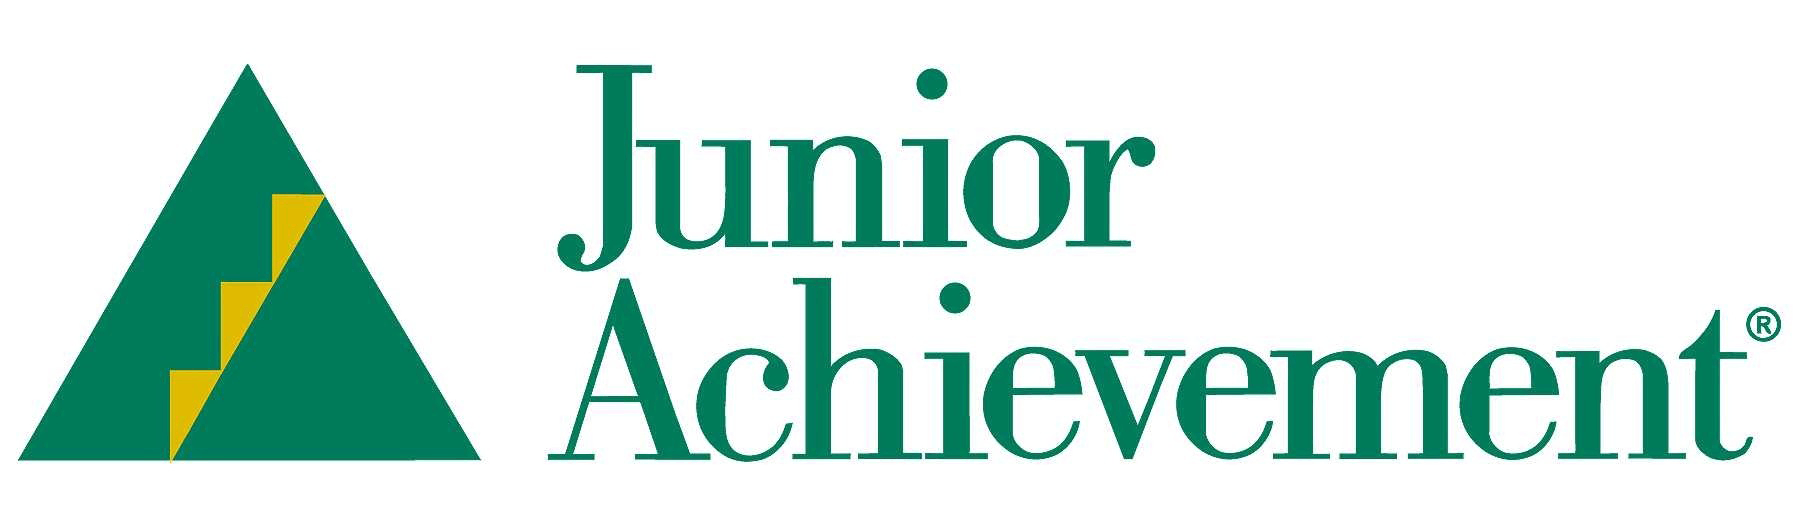 Junior-Achieve